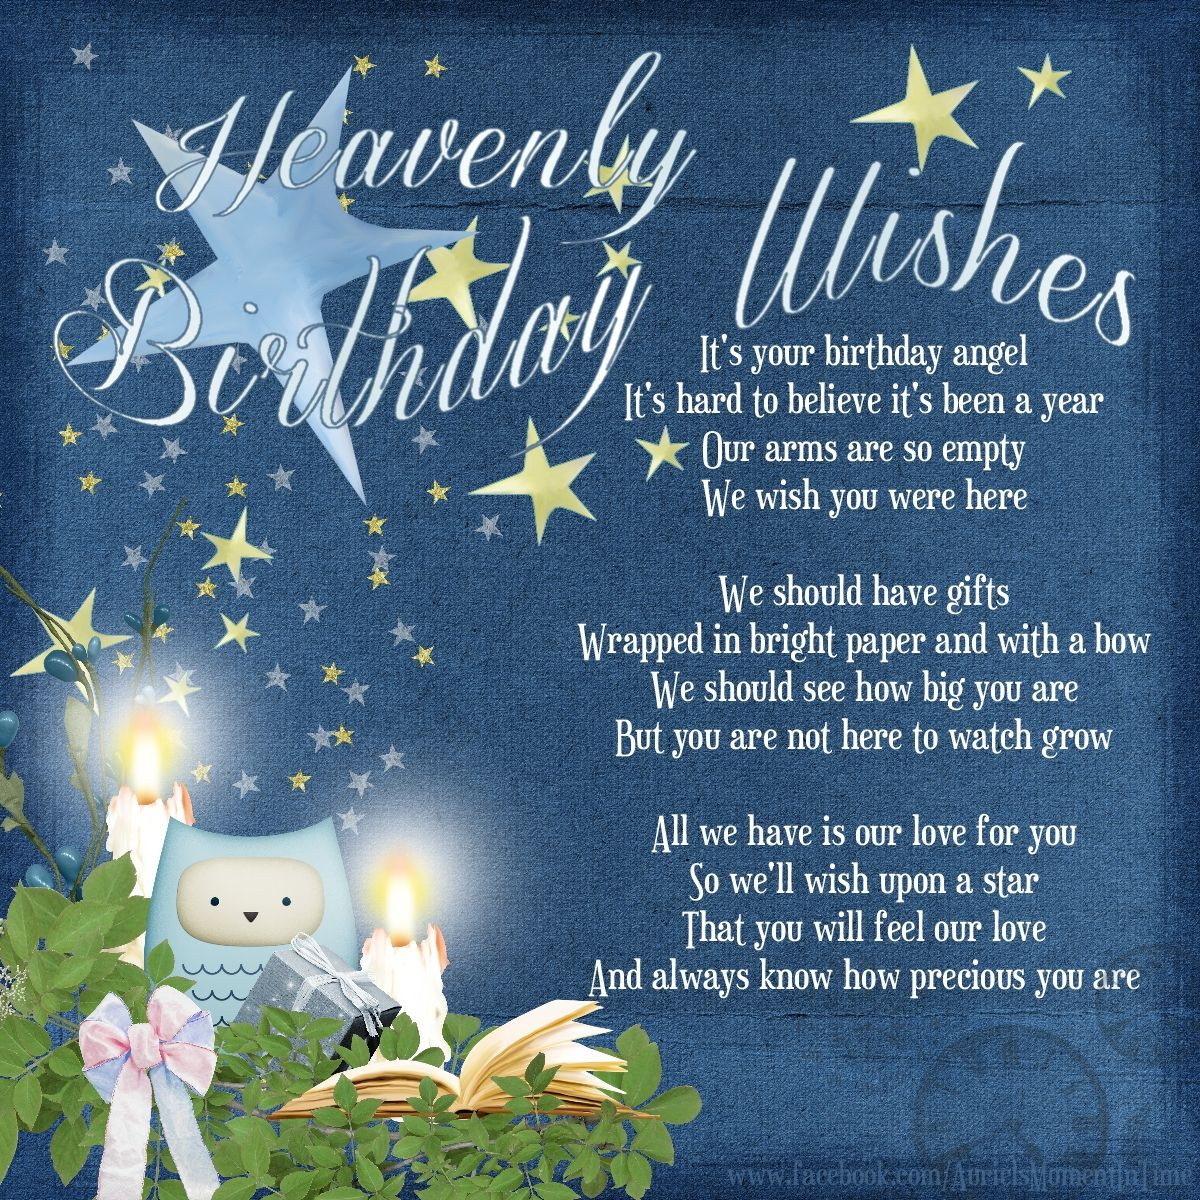 Best ideas about Heaven Birthday Wishes . Save or Pin Heavenly Birthday Wishes Auriel Now.